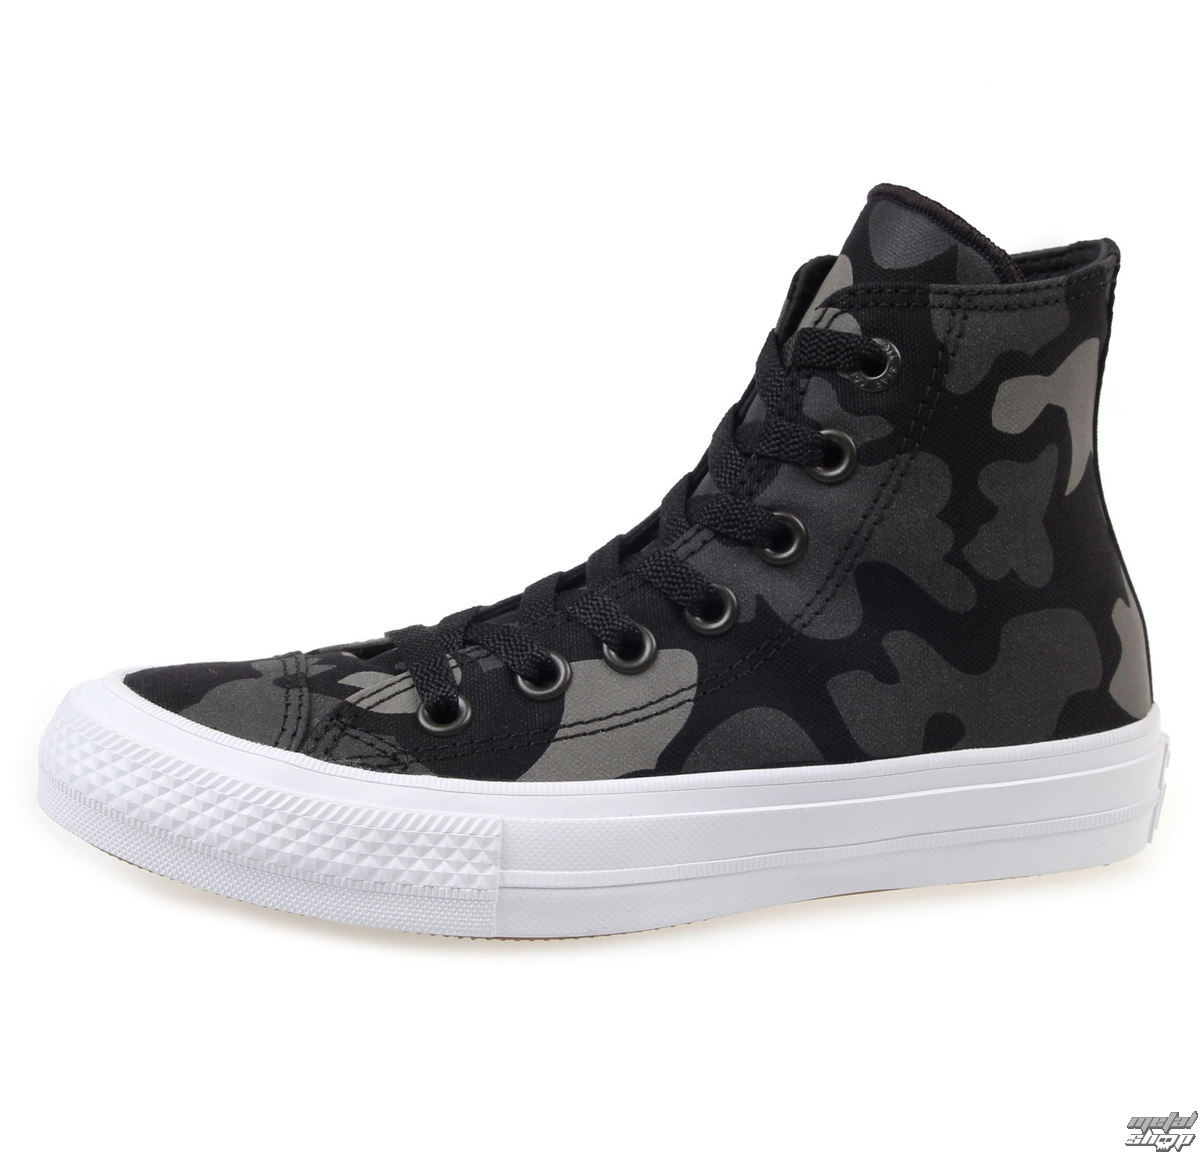 topánky CONVERSE - Chuck Taylor All Star II - CHARCOAL / BLACK - C151157